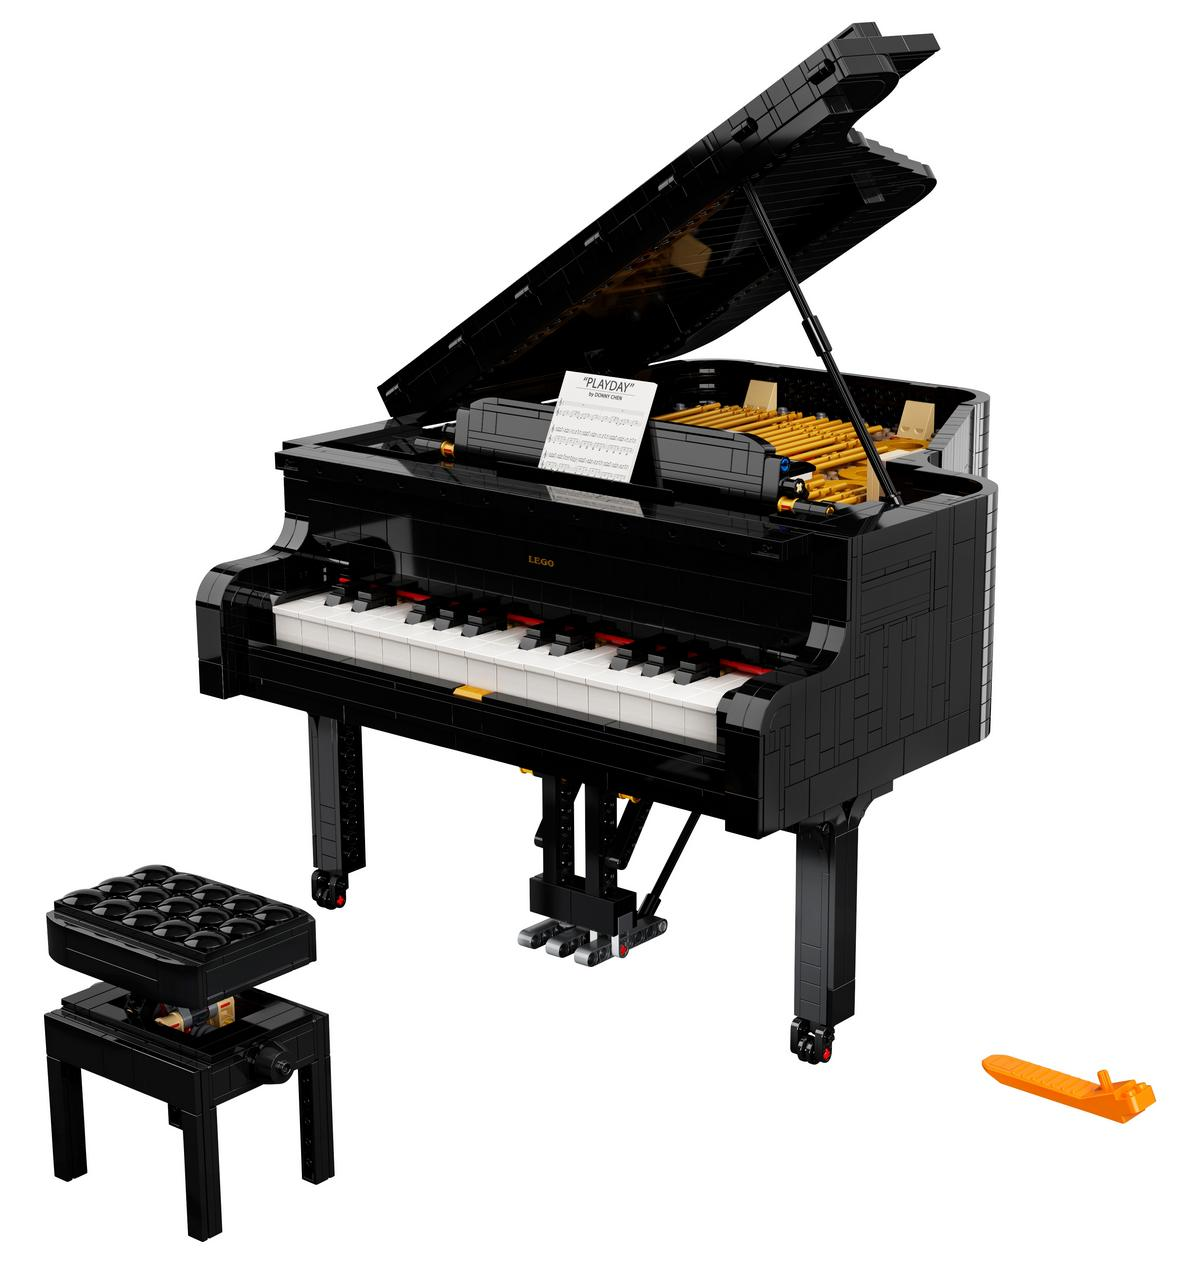 This 3,600-piece playable Lego Grand Piano dishes out some sweet tunes